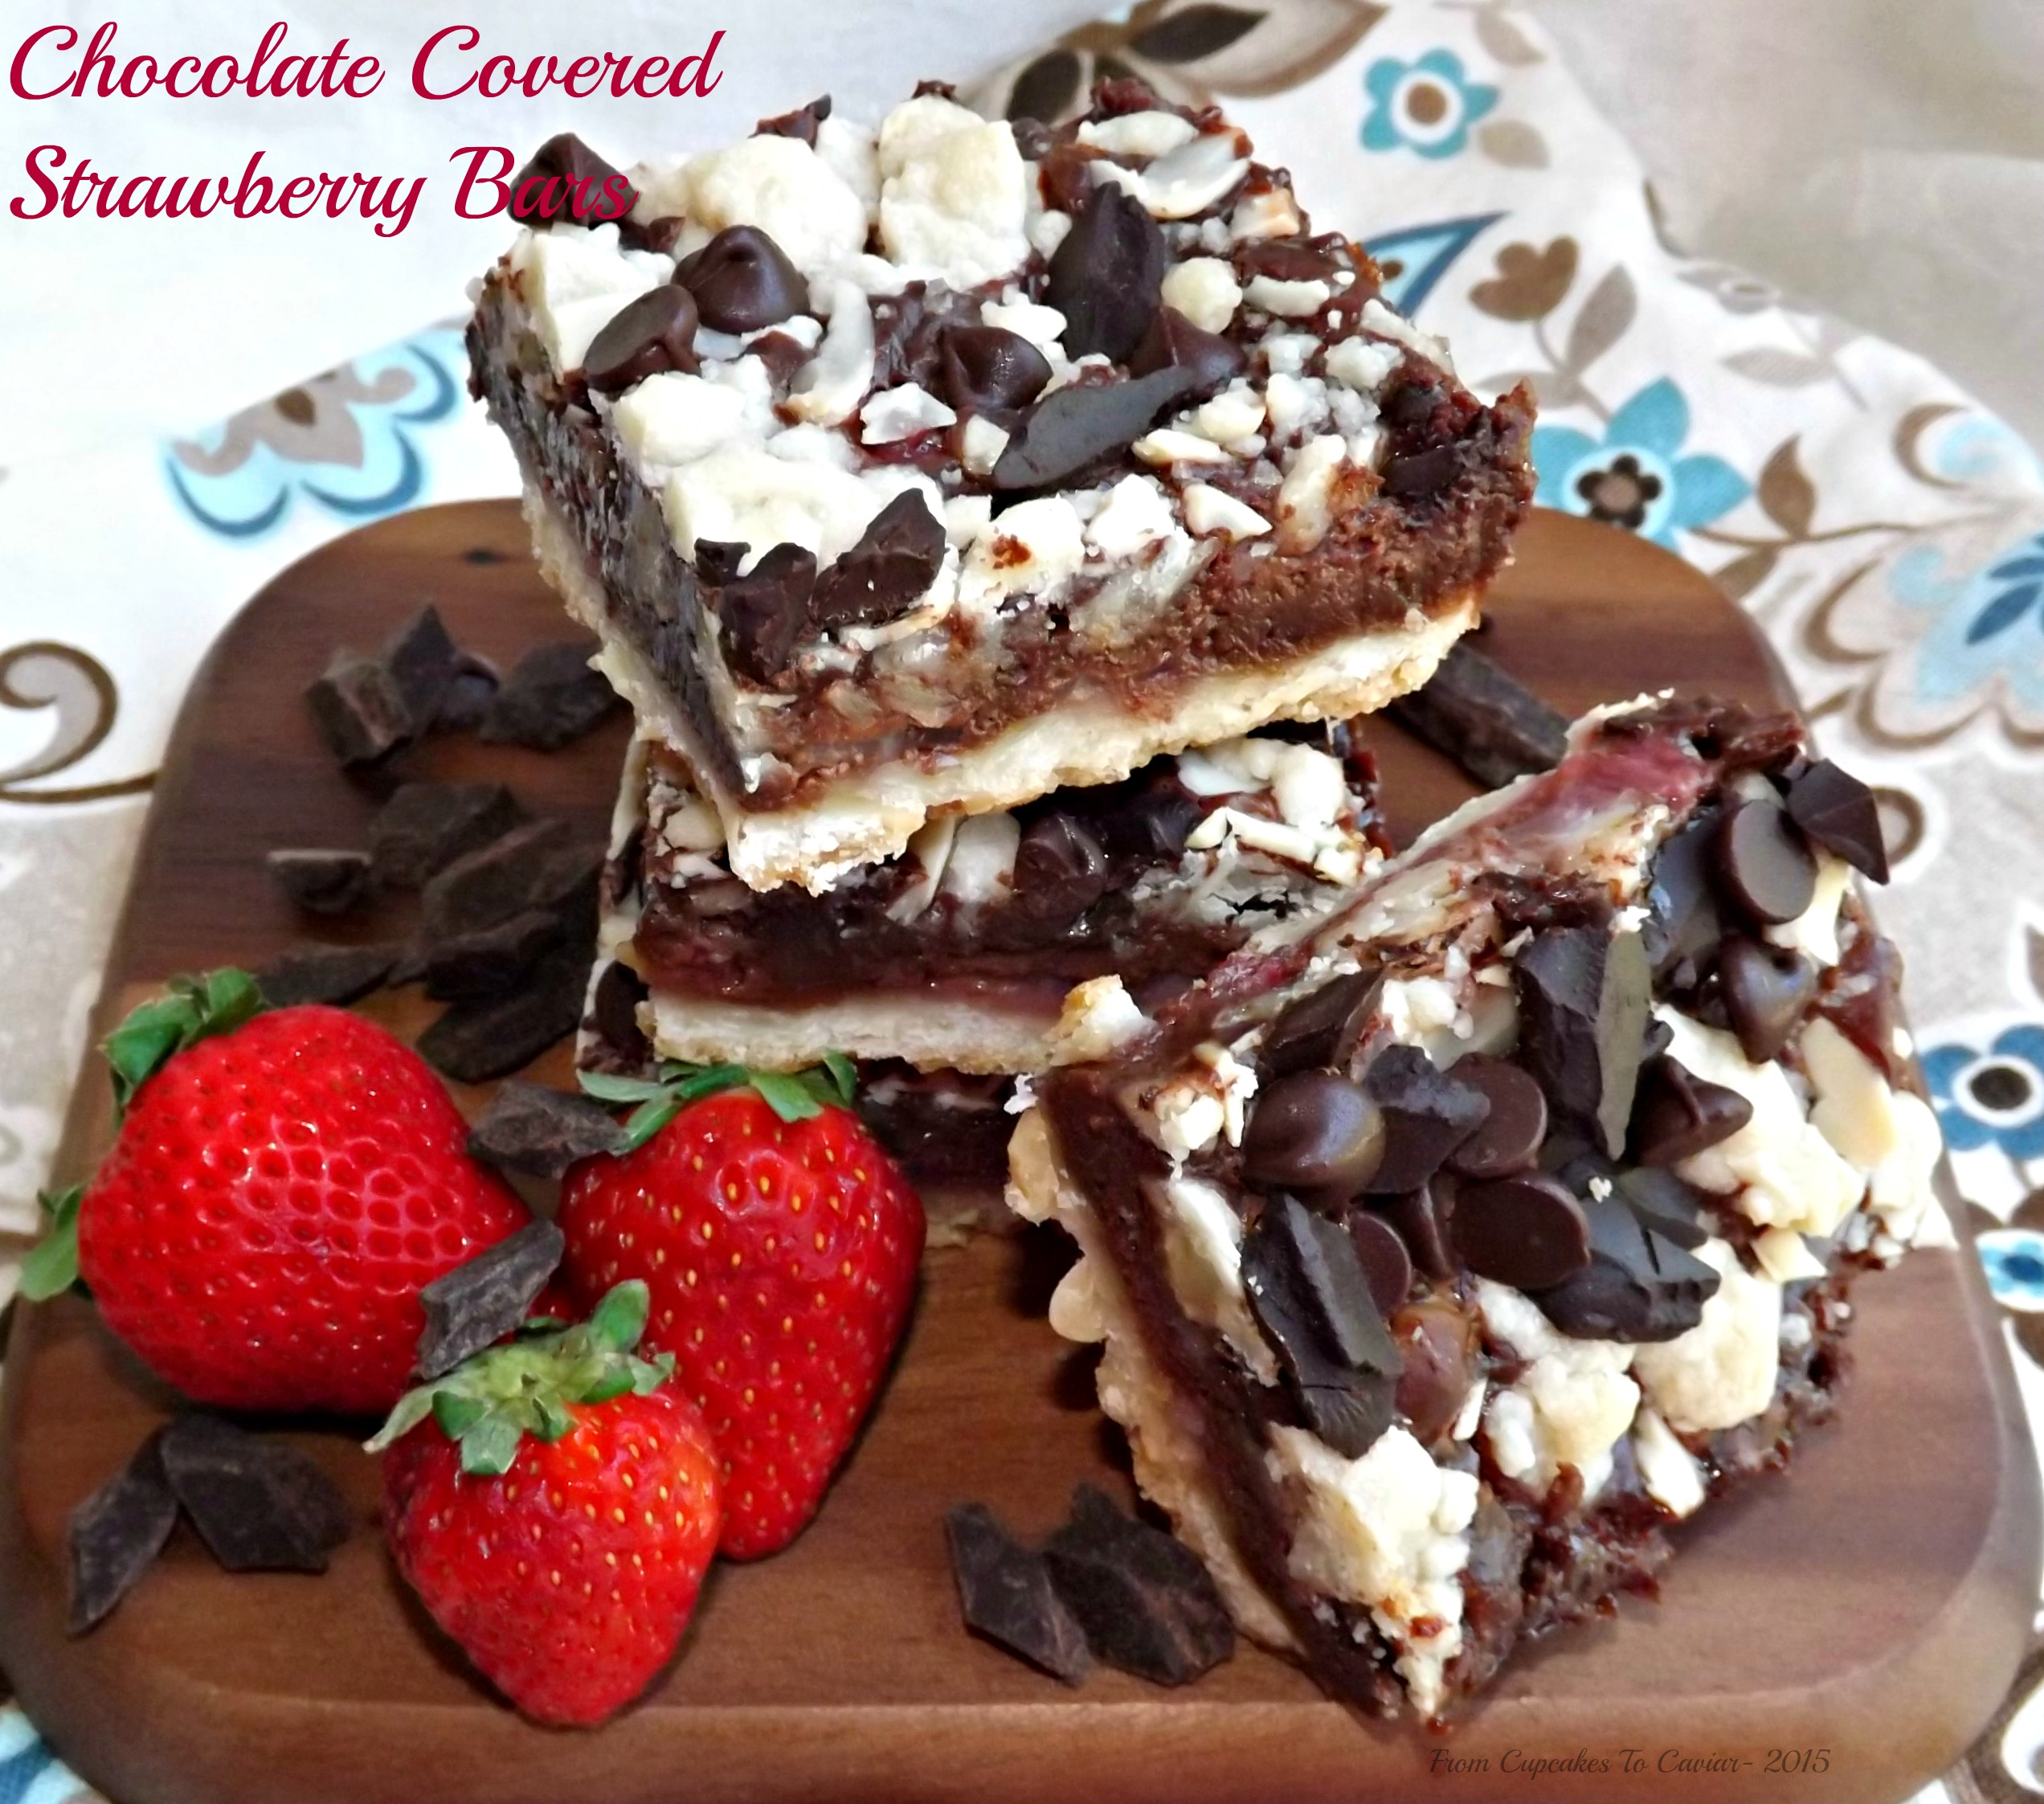 Chocolate Covered Strawberry Bars